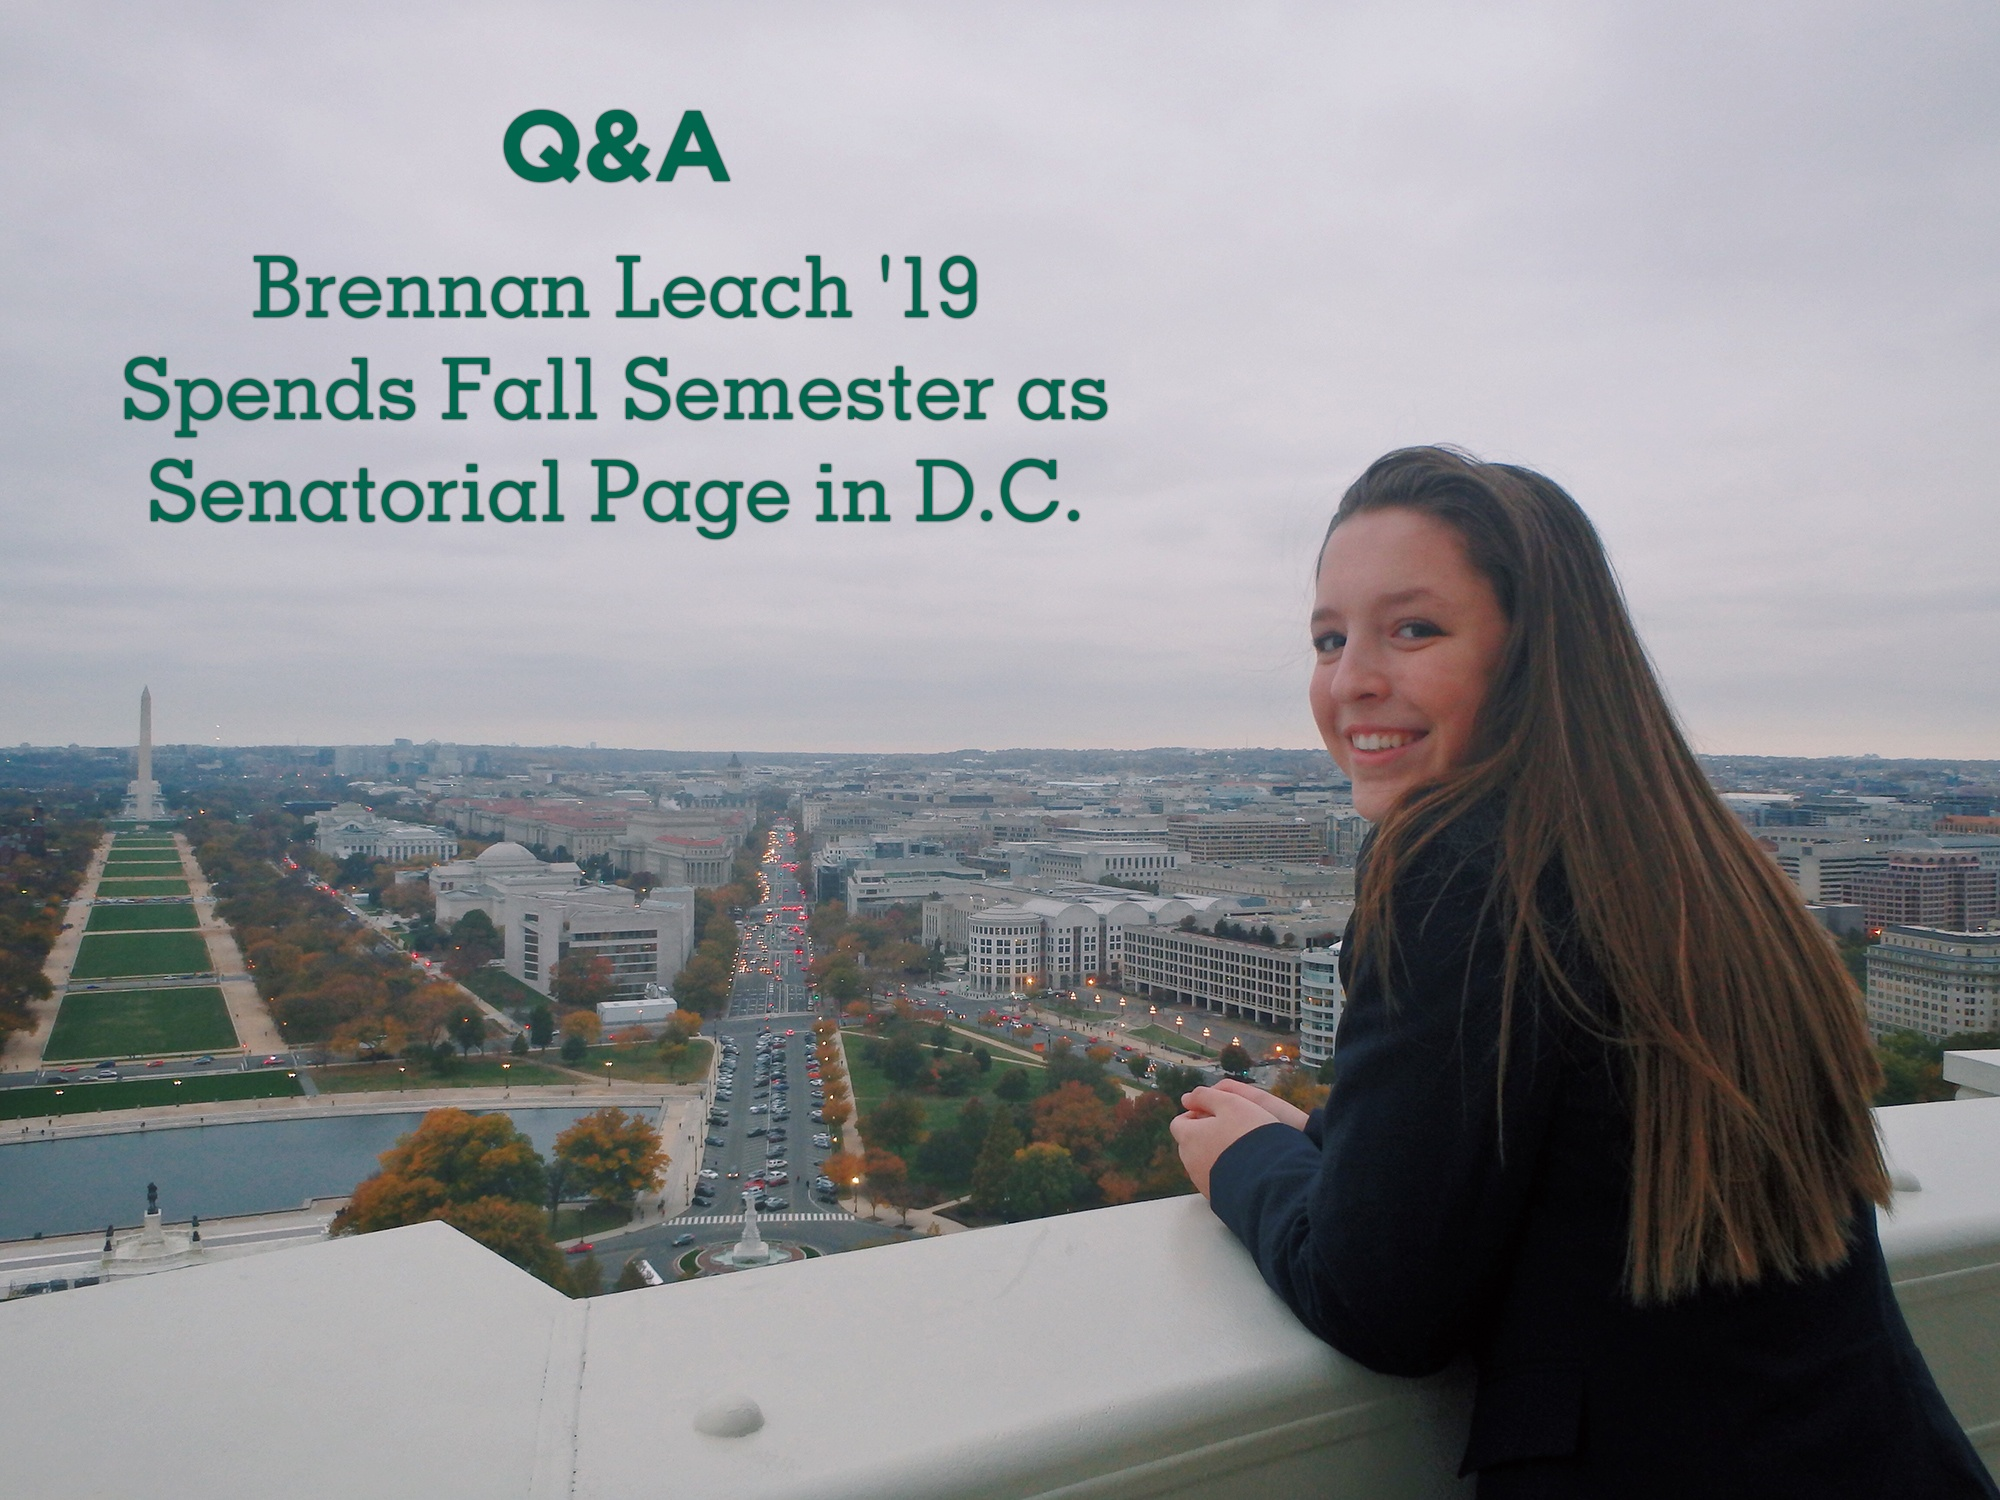 Brennan Leach '19 Spends Fall Semester as Senatorial Page in D.C.